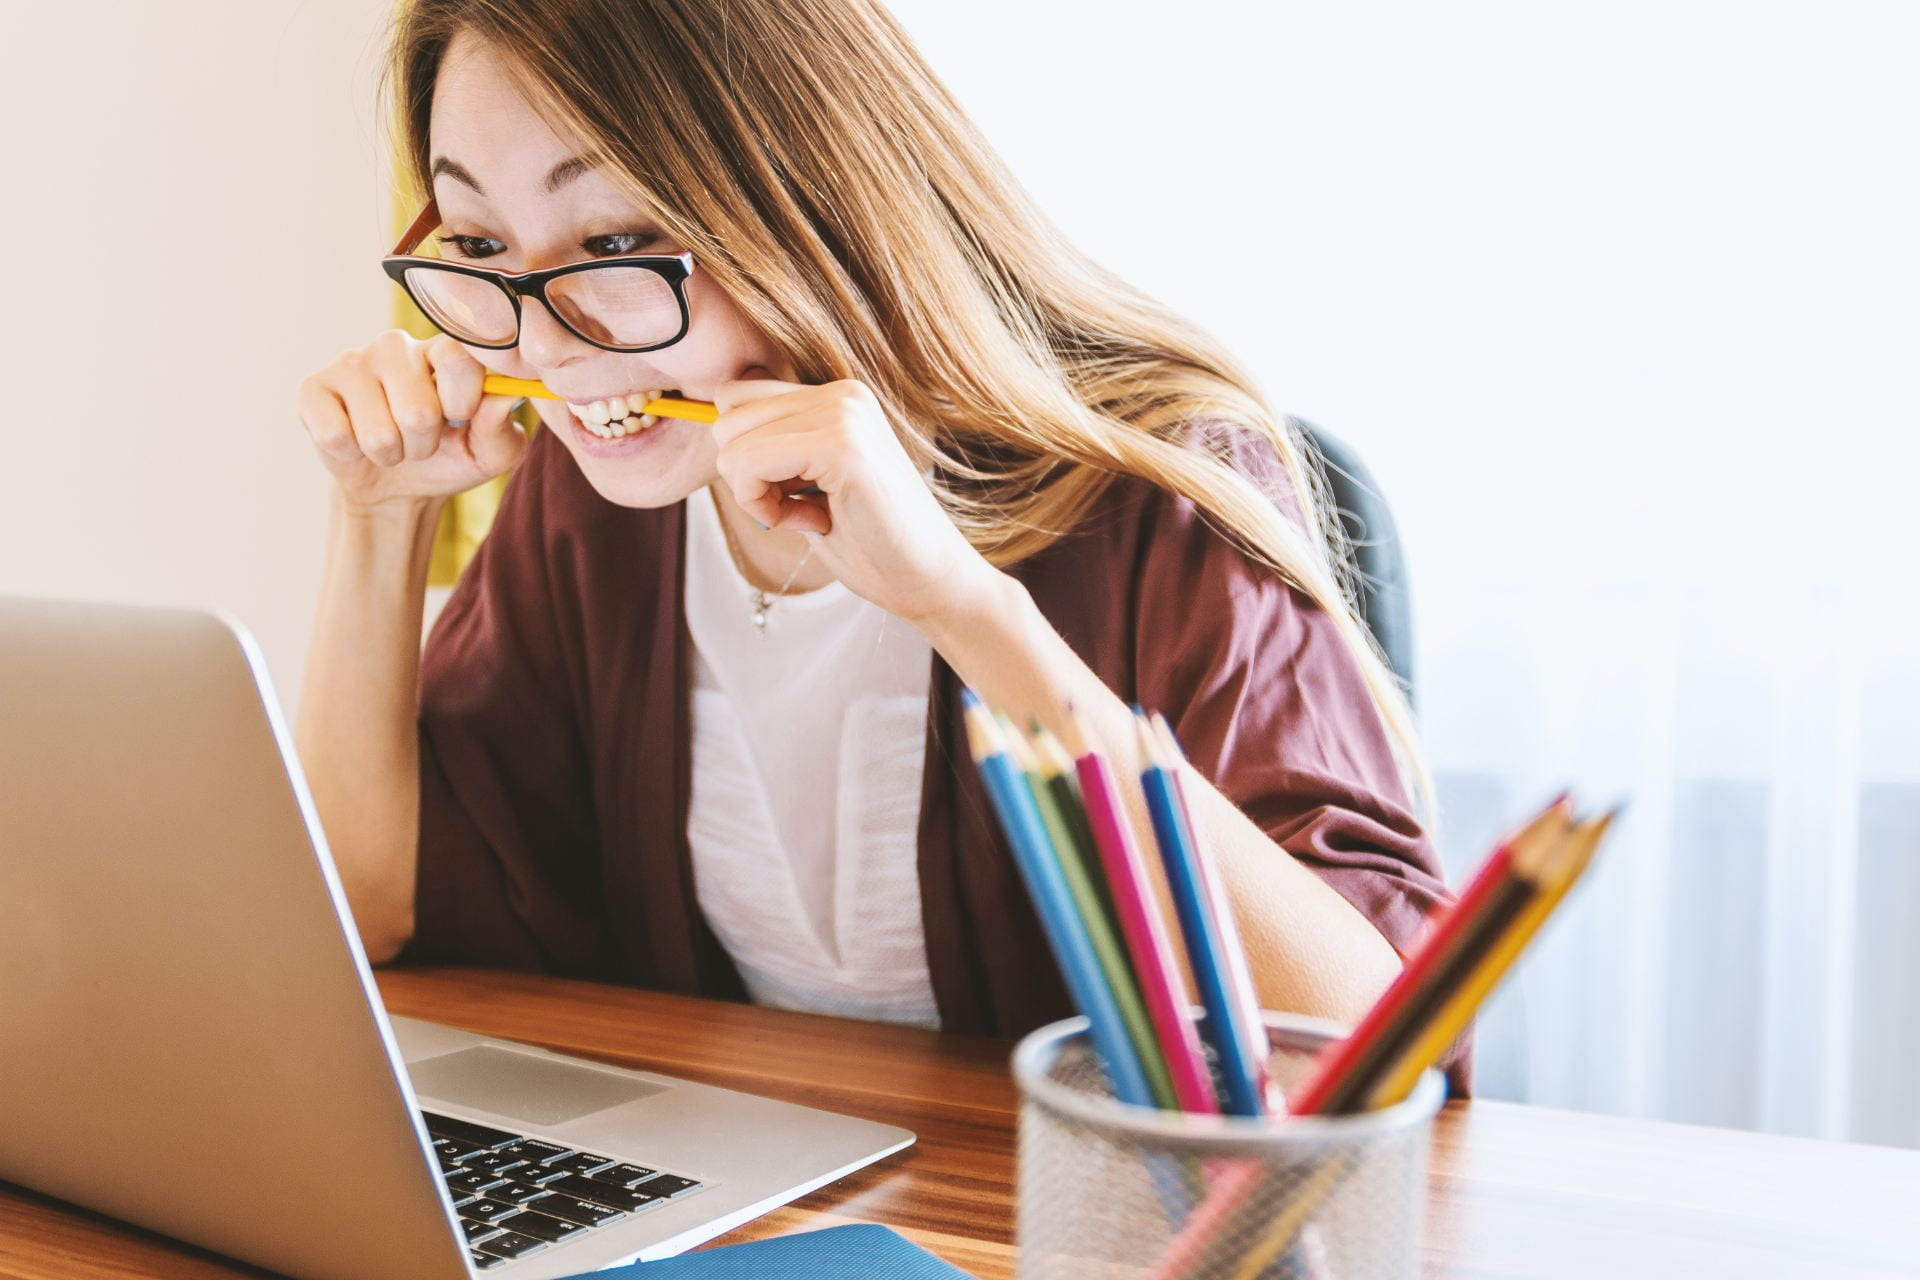 Woman biting pencil while sitting in front of computer